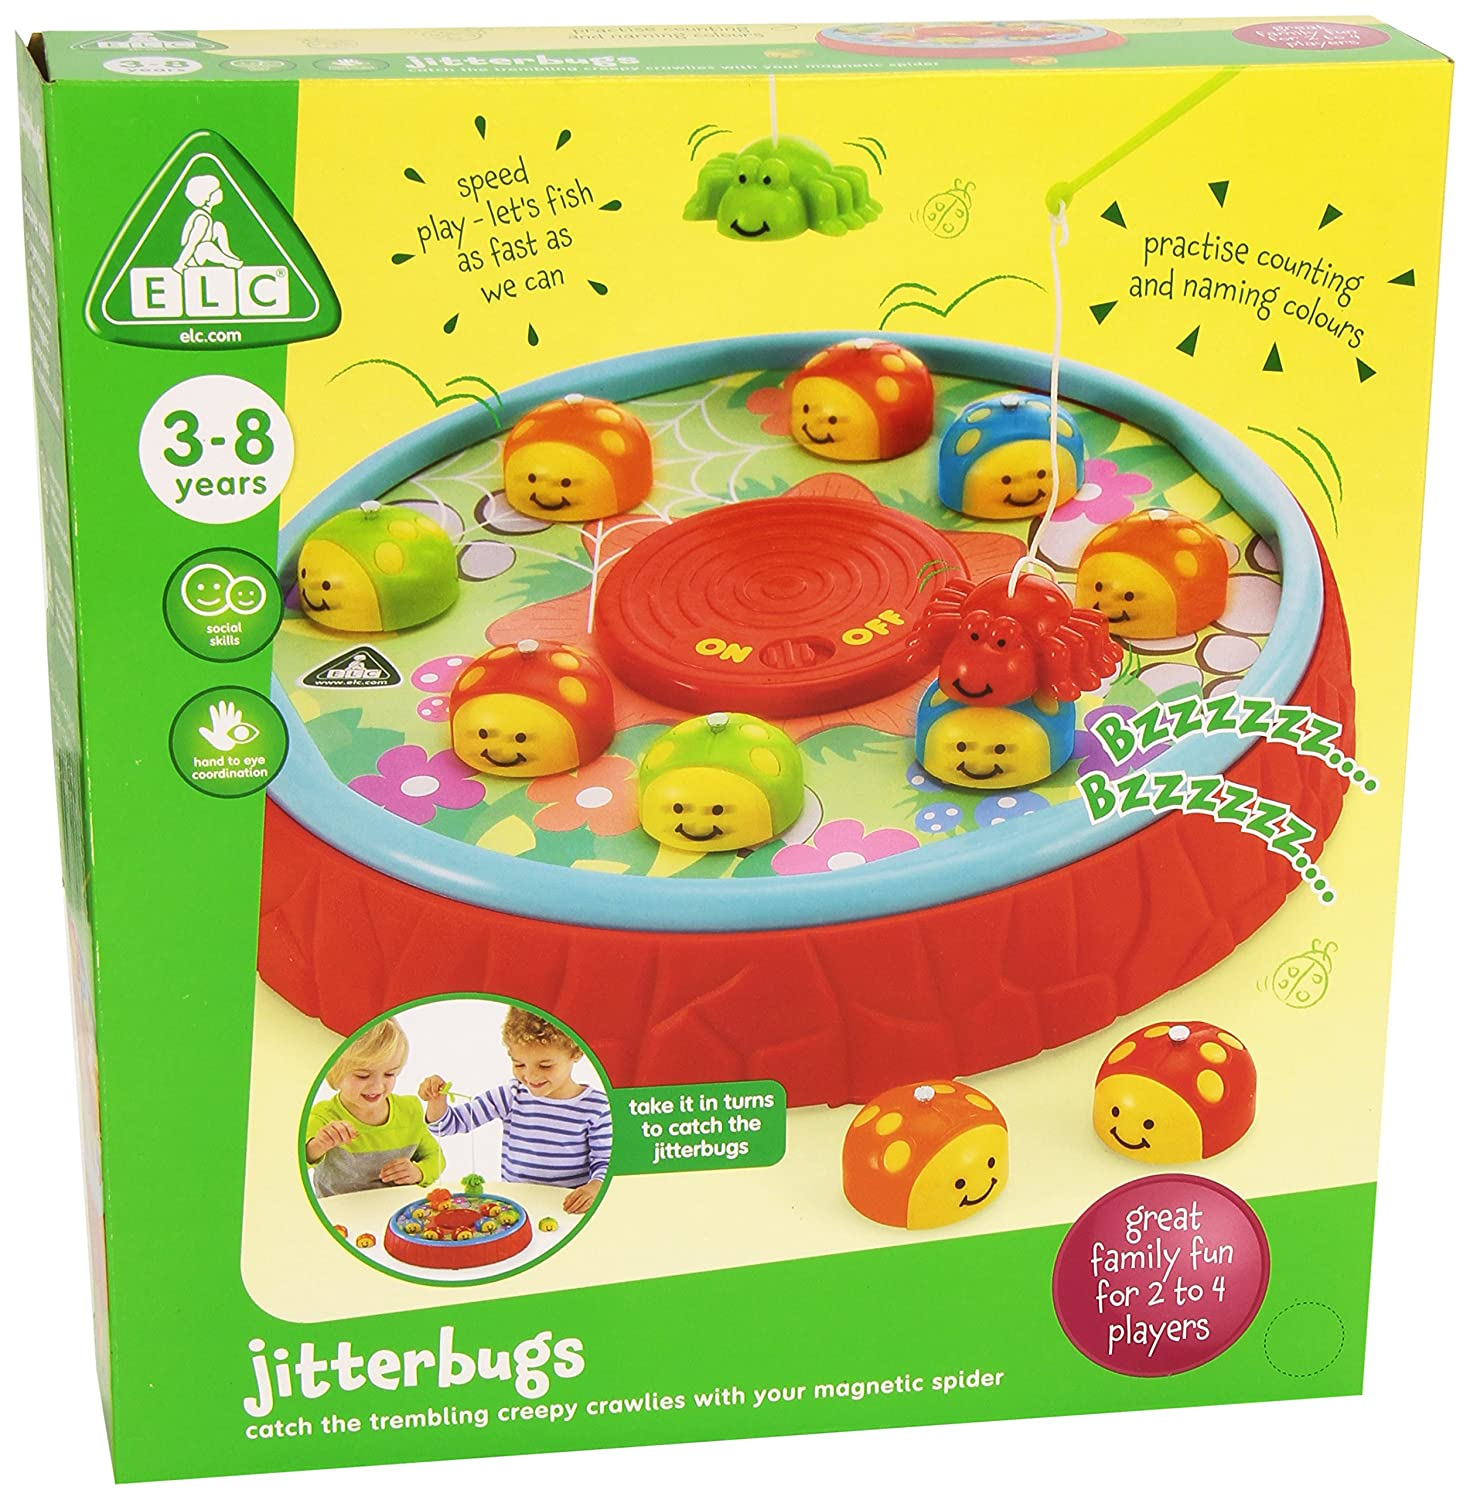 ELC Jitterbugs Game Amazon Toys & Games